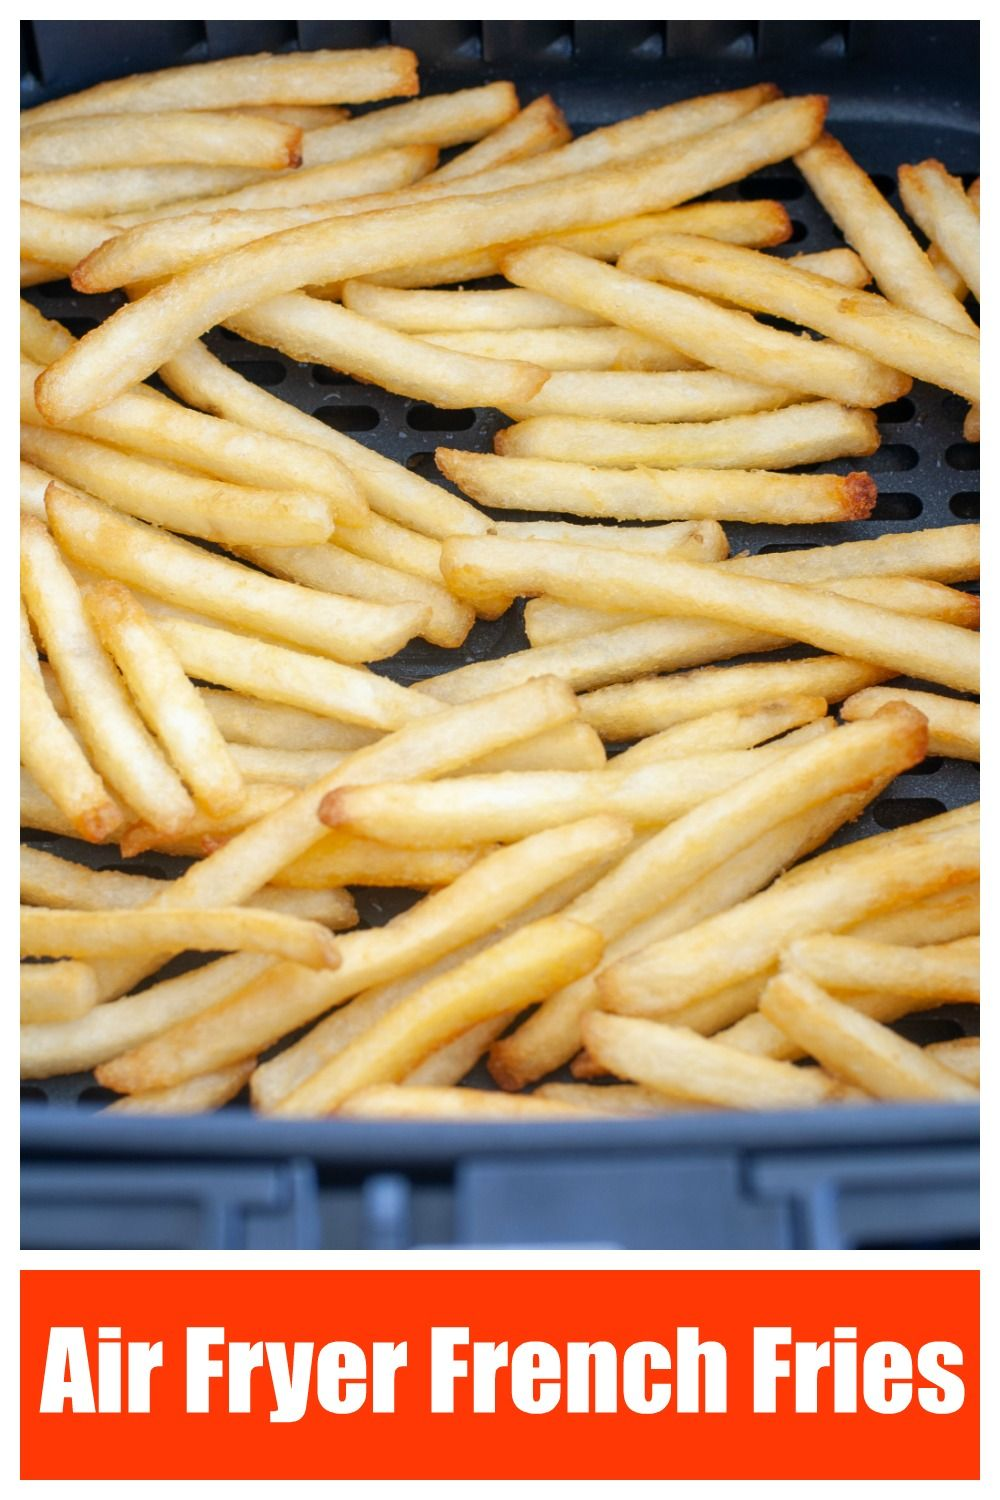 Air Fryer French Fries in 2020 Frozen french fries, Air